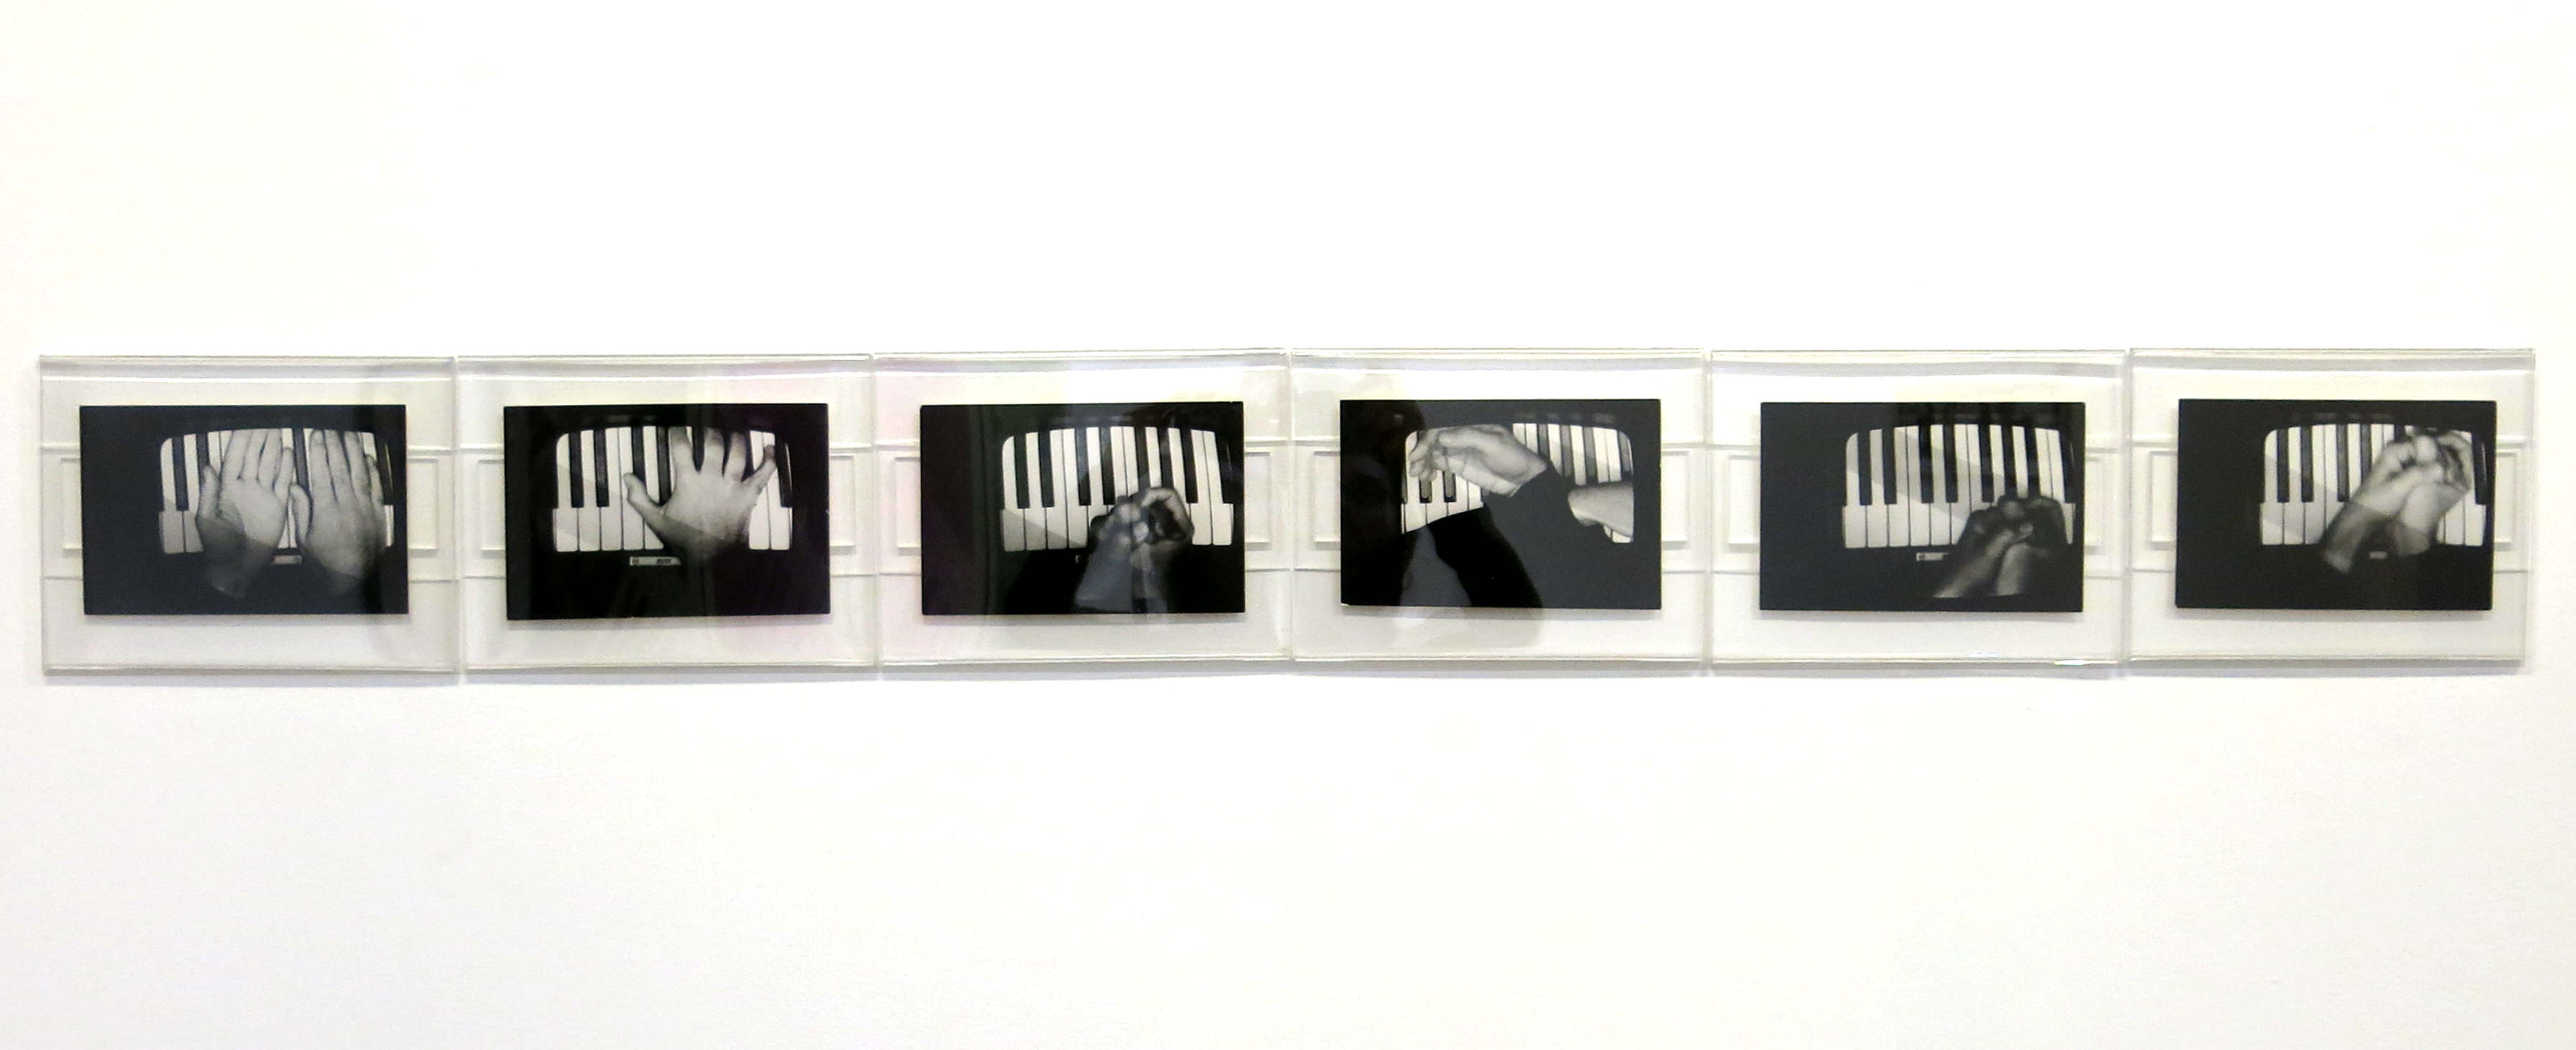 Gesti sul Piano 1975 black and white photographs cm 12x17 4 each